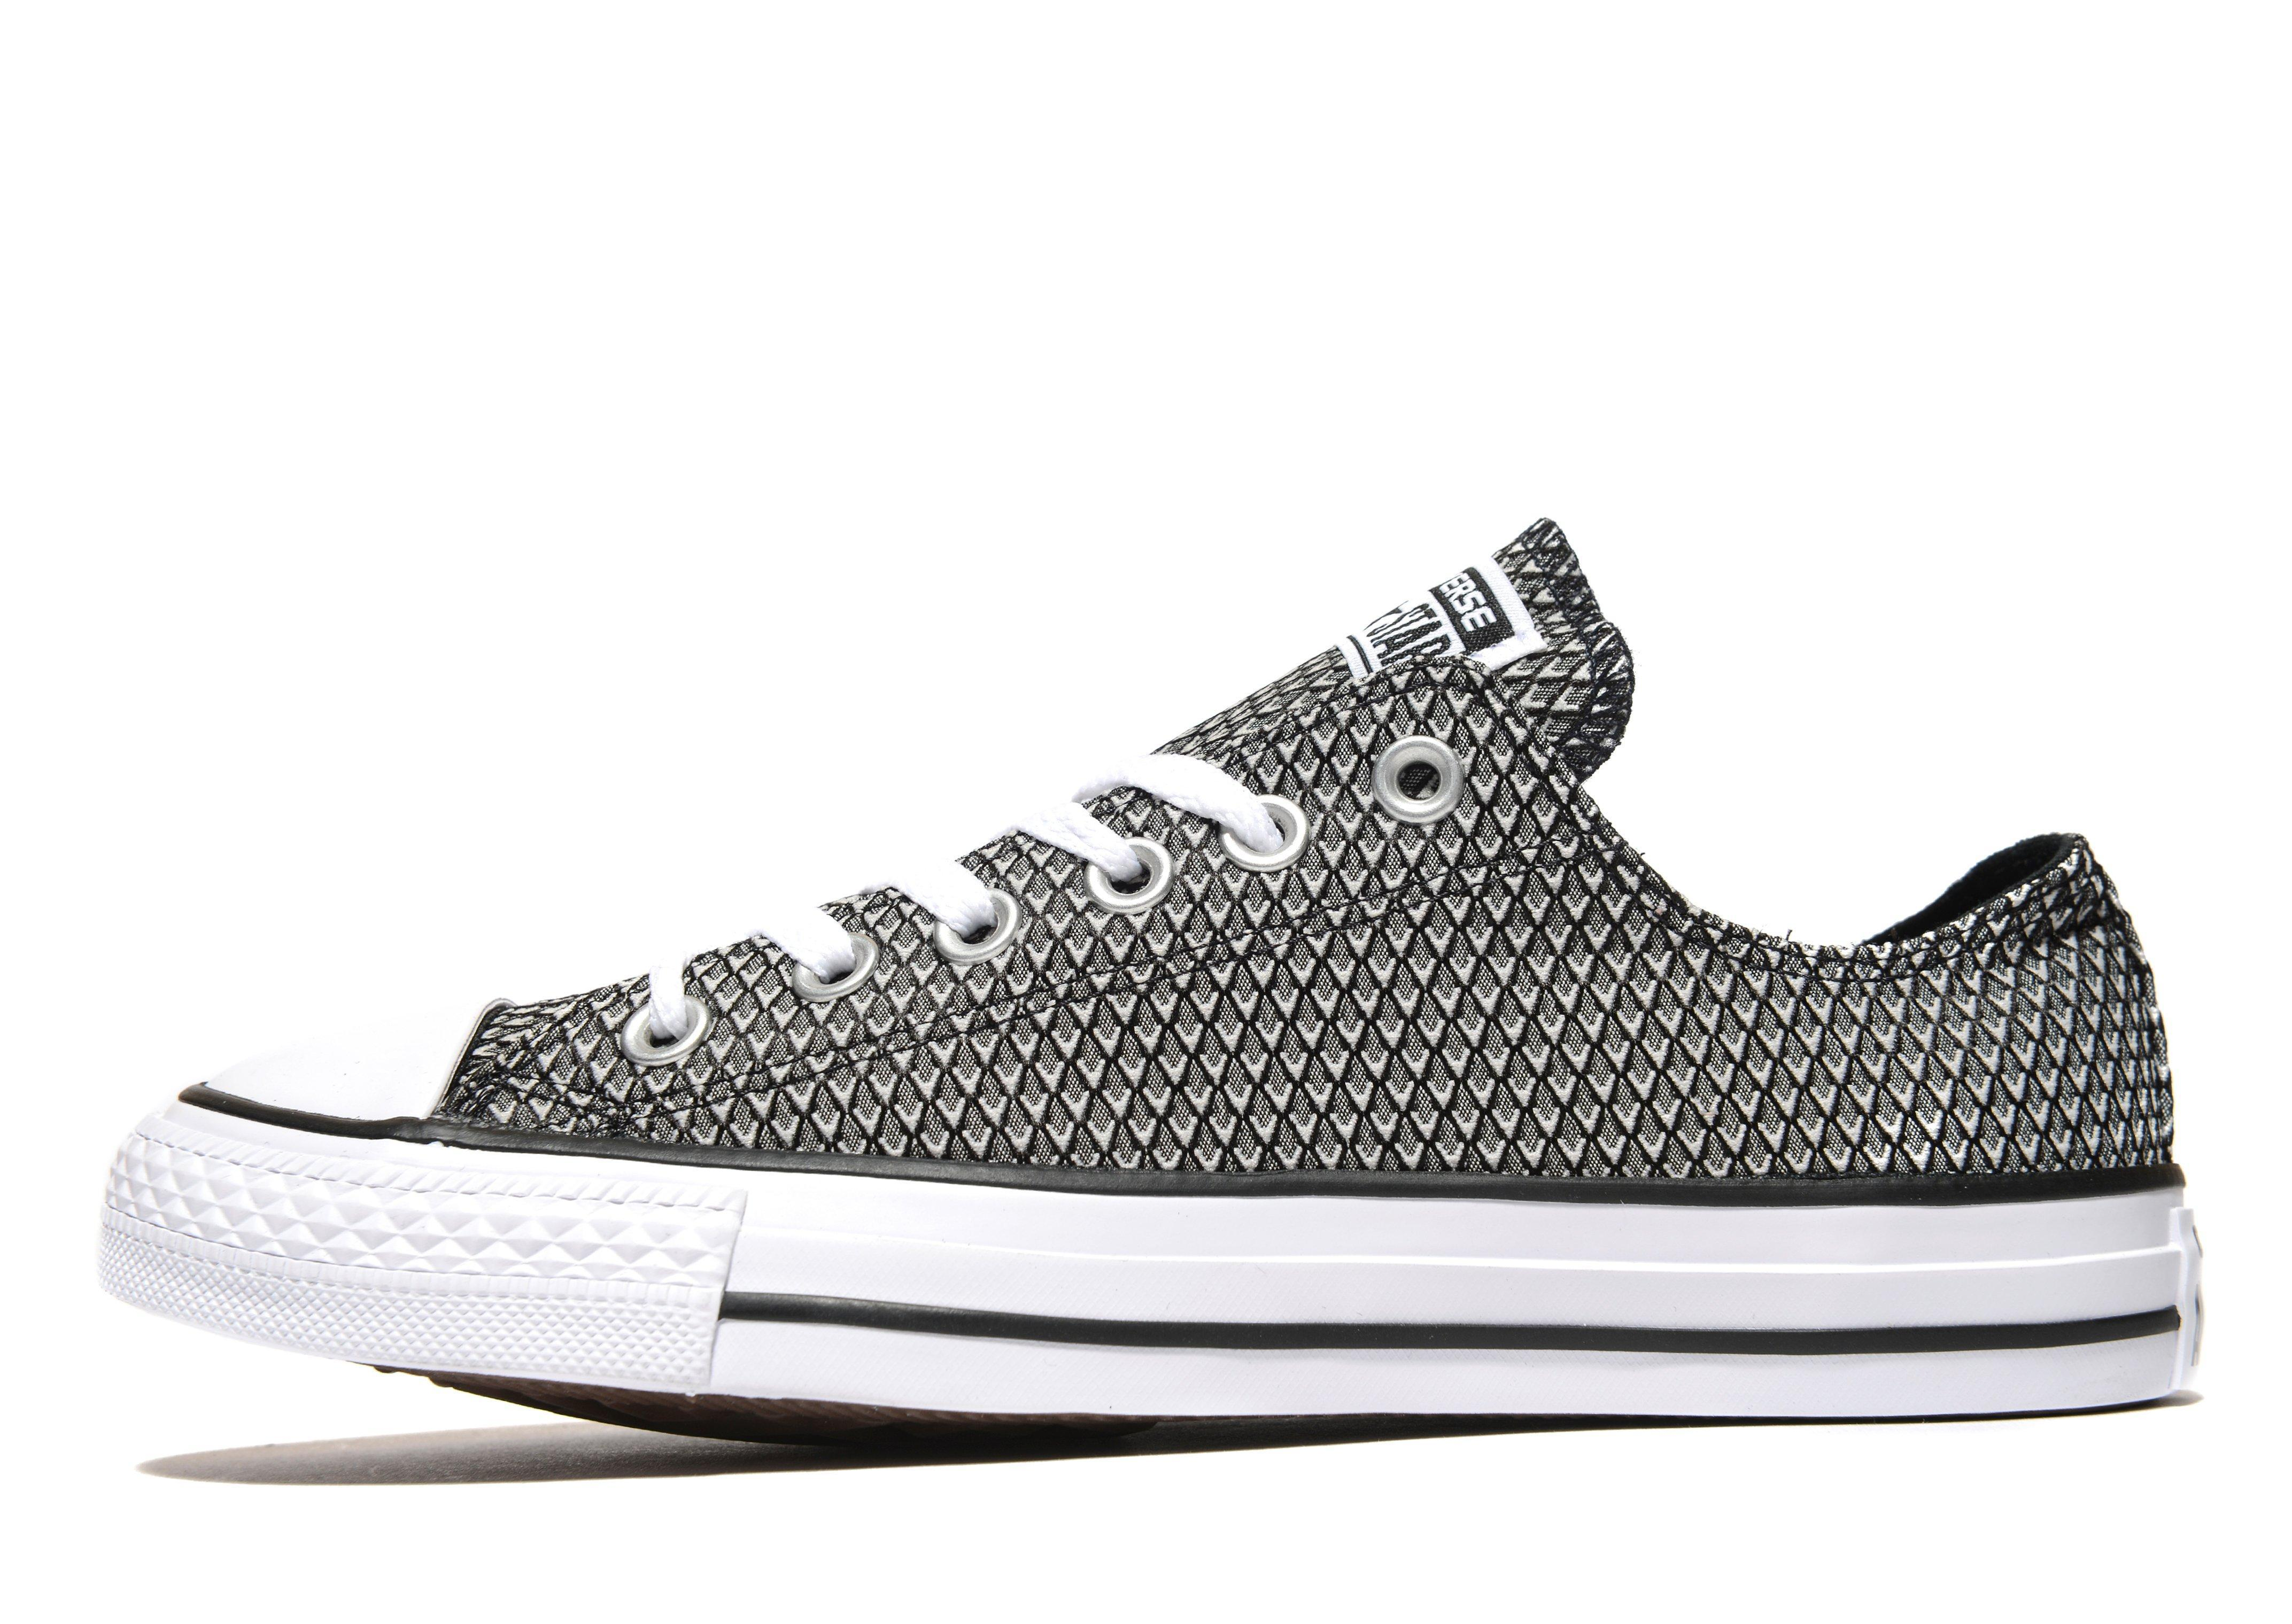 de15420bb709ae Gallery. Previously sold at  JD Sports · Women s Converse Chuck Taylor ...